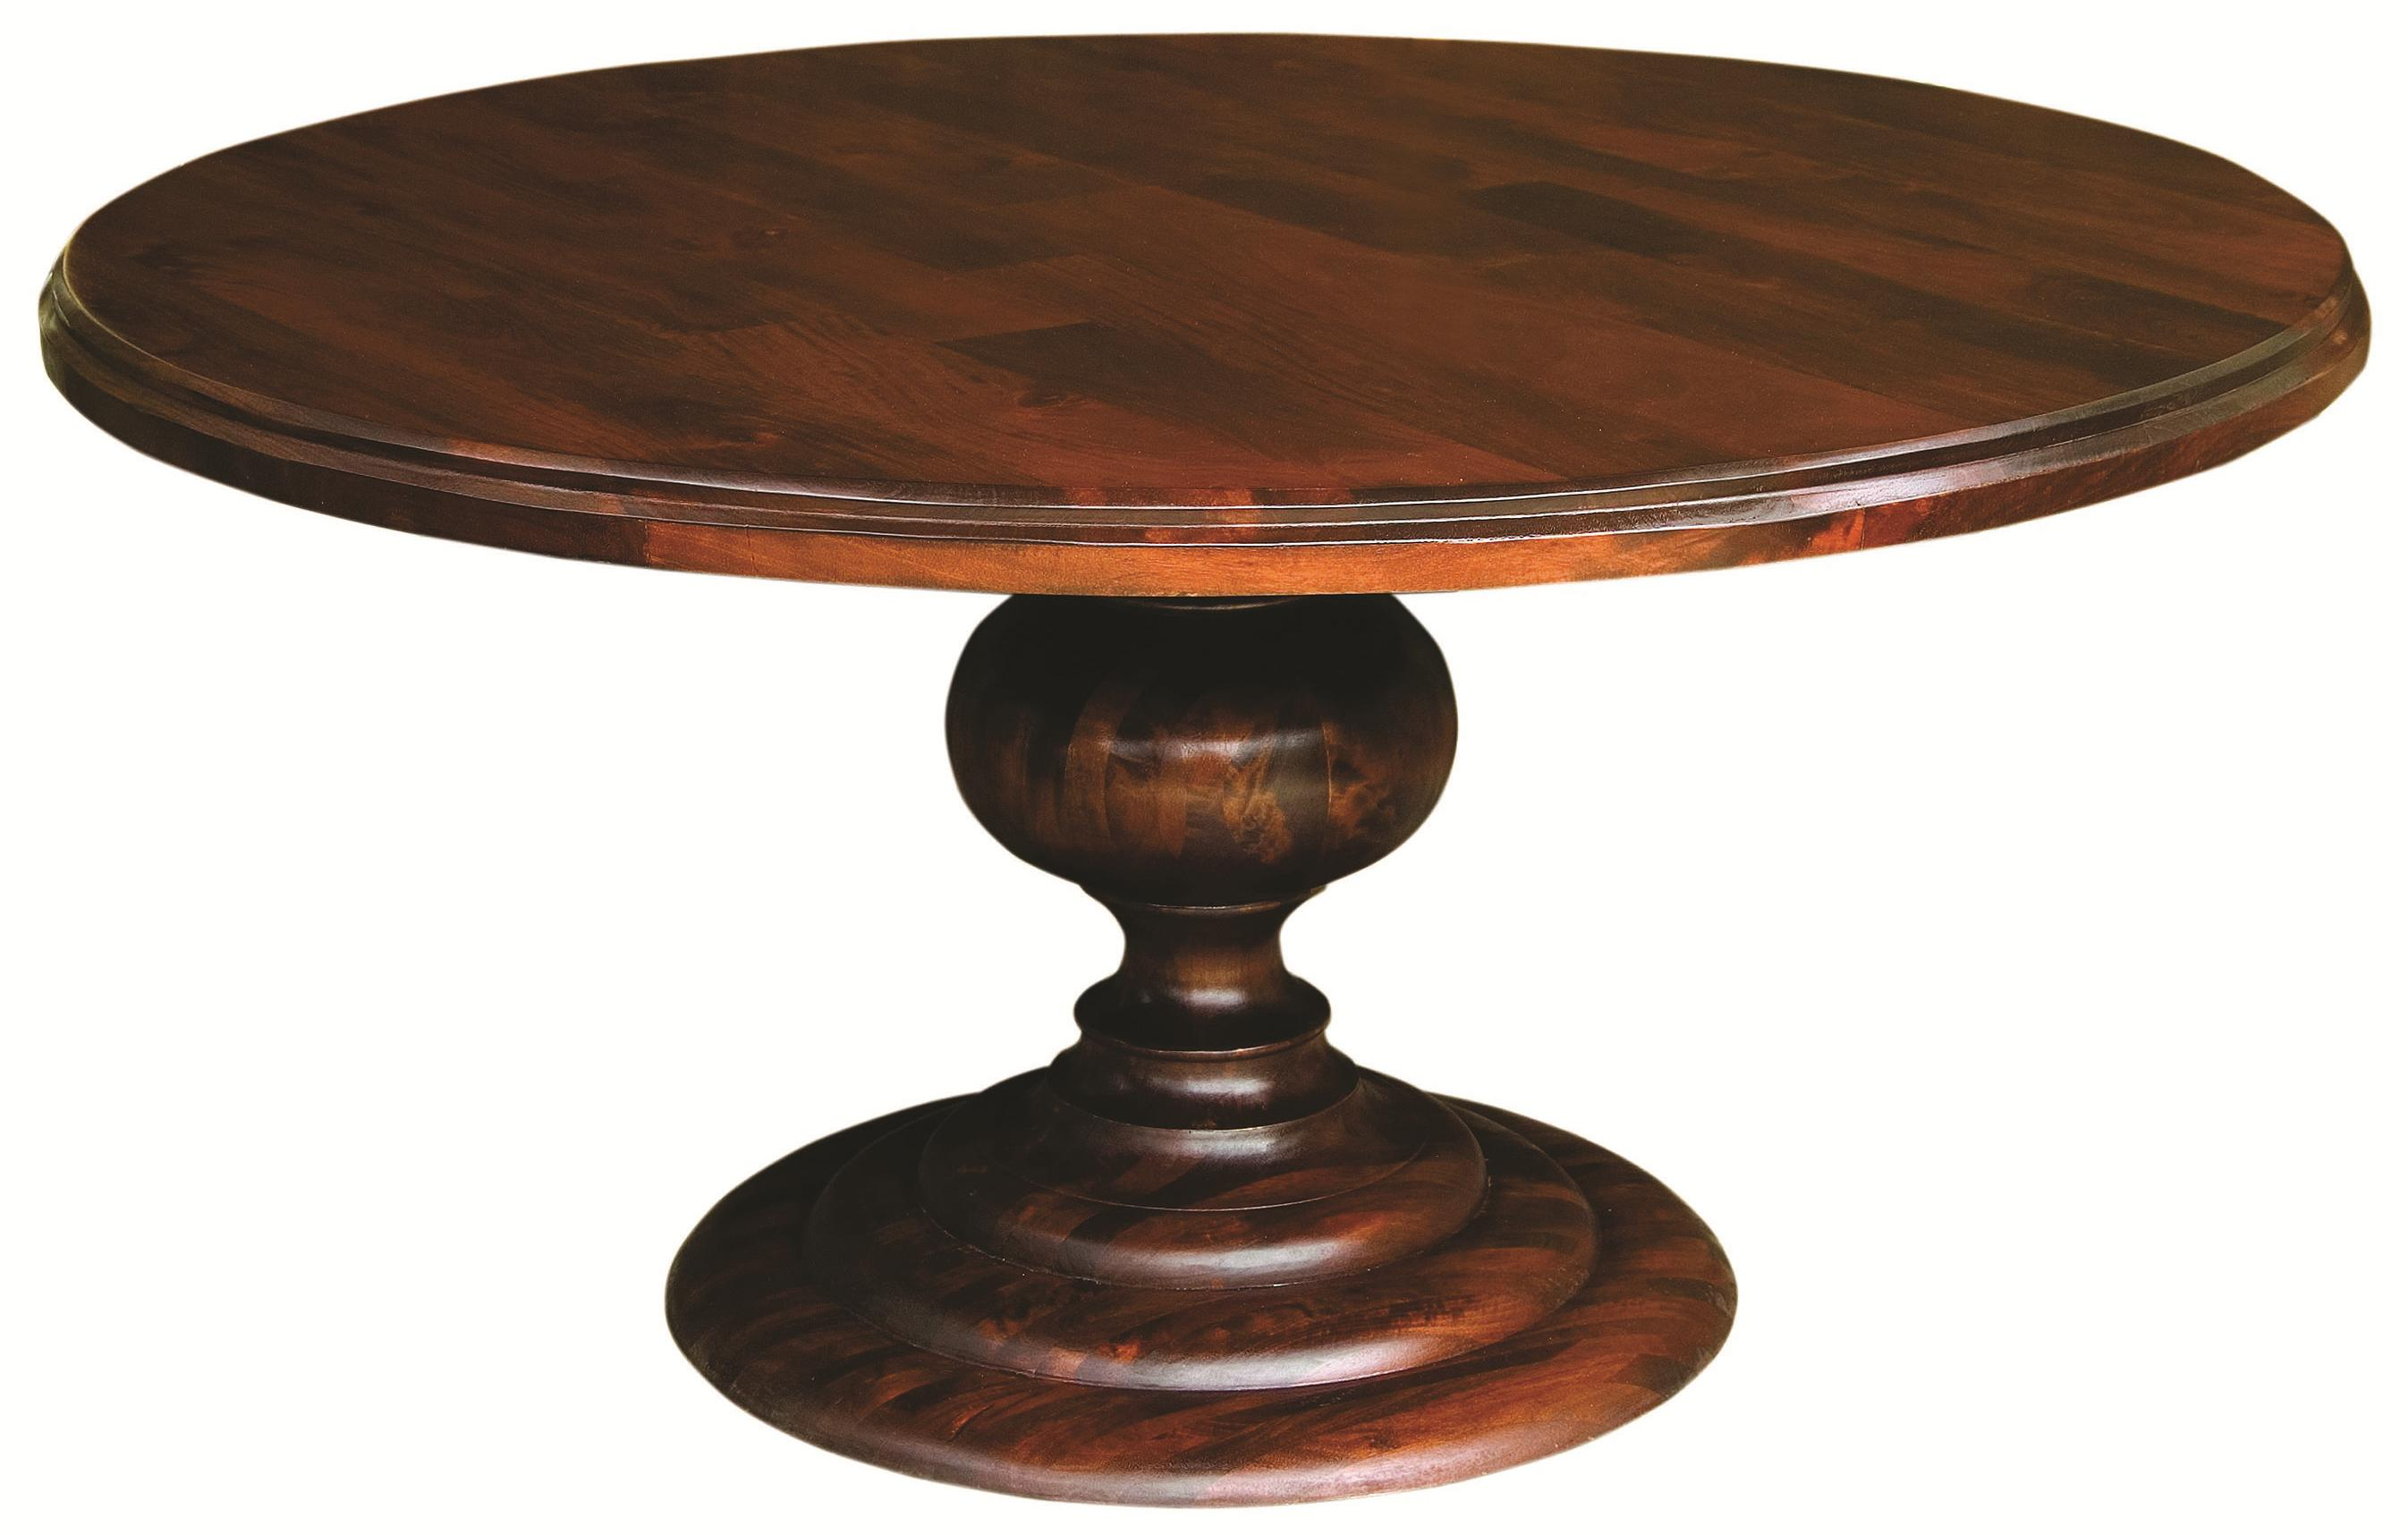 Four Hands Magnolia Round Dining Table - Item Number: IMGN-60R-DO